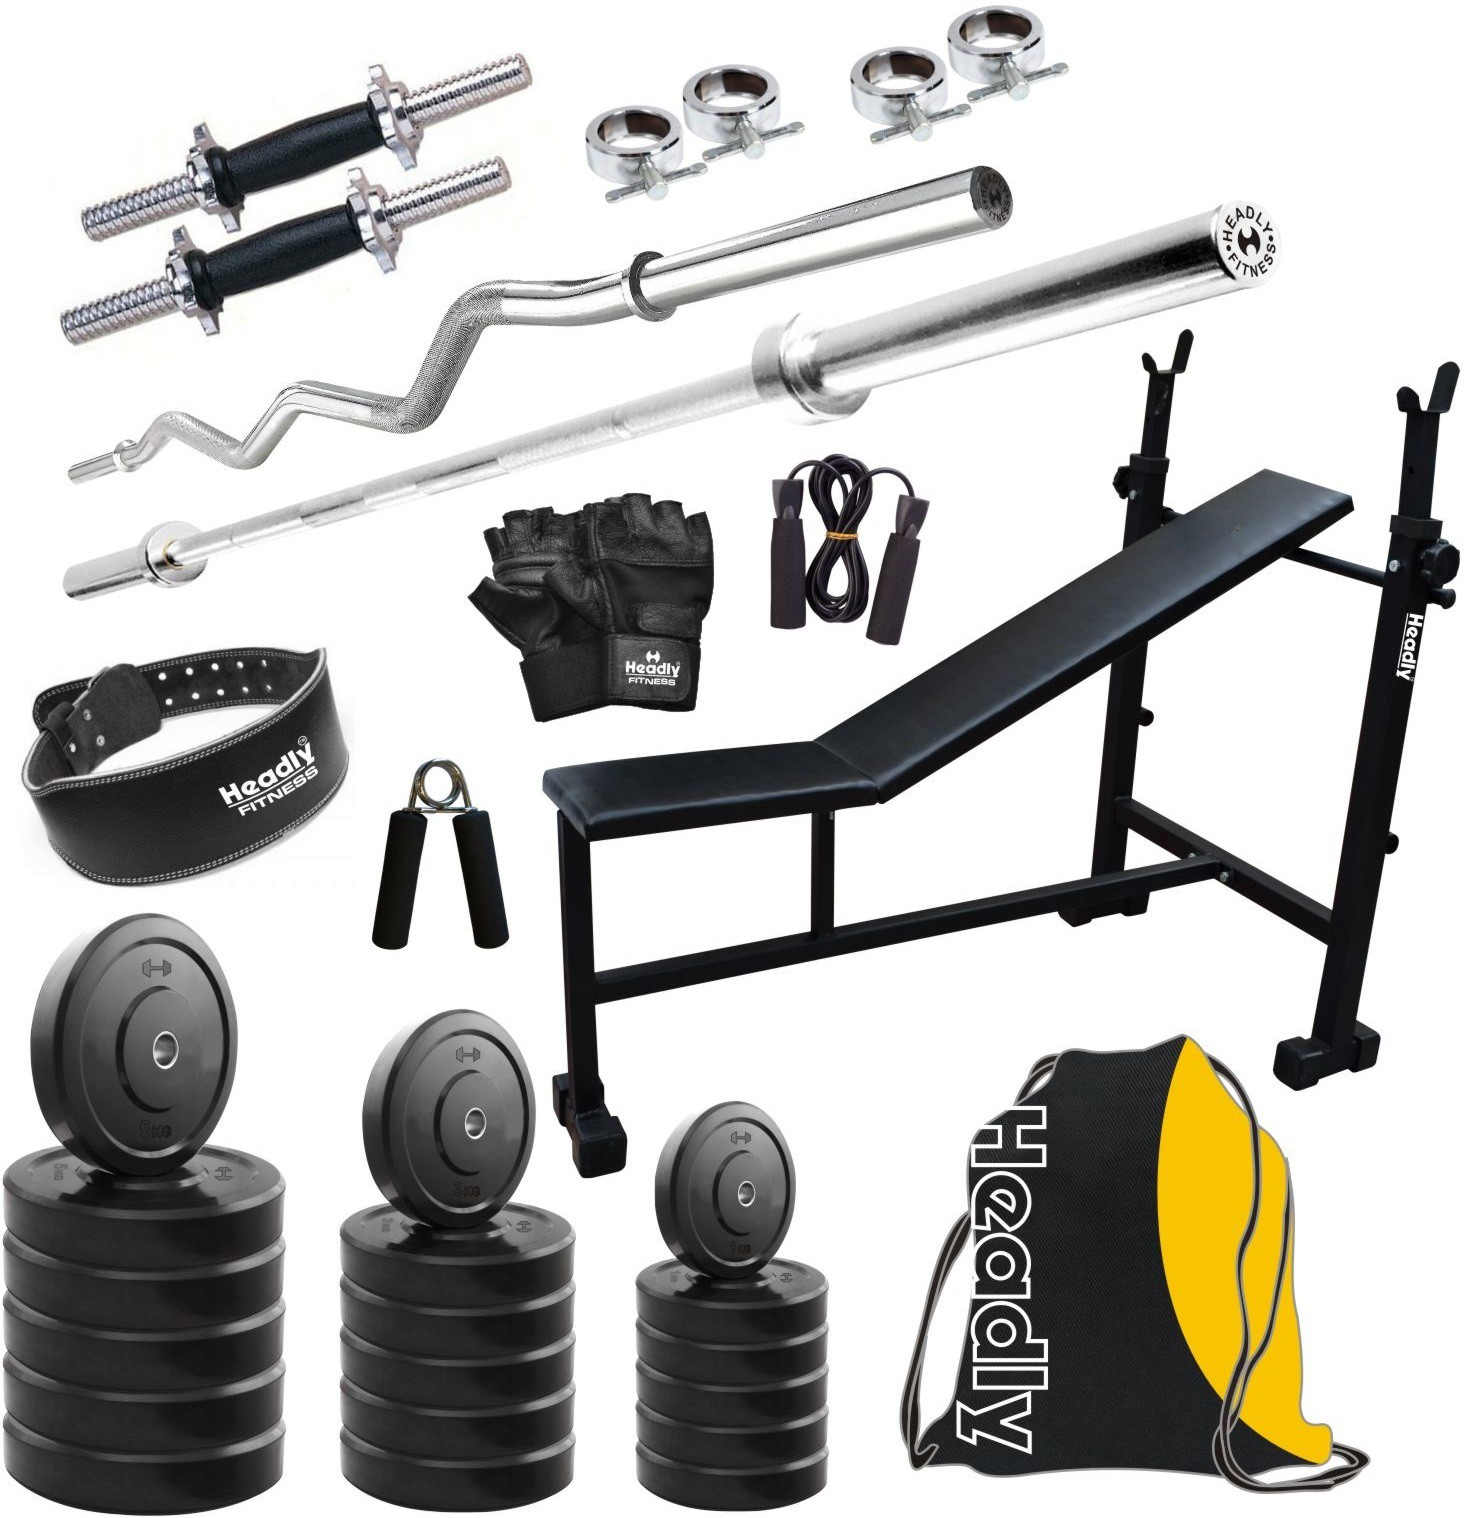 Deals | Home Gym Combos Headly, KRX...